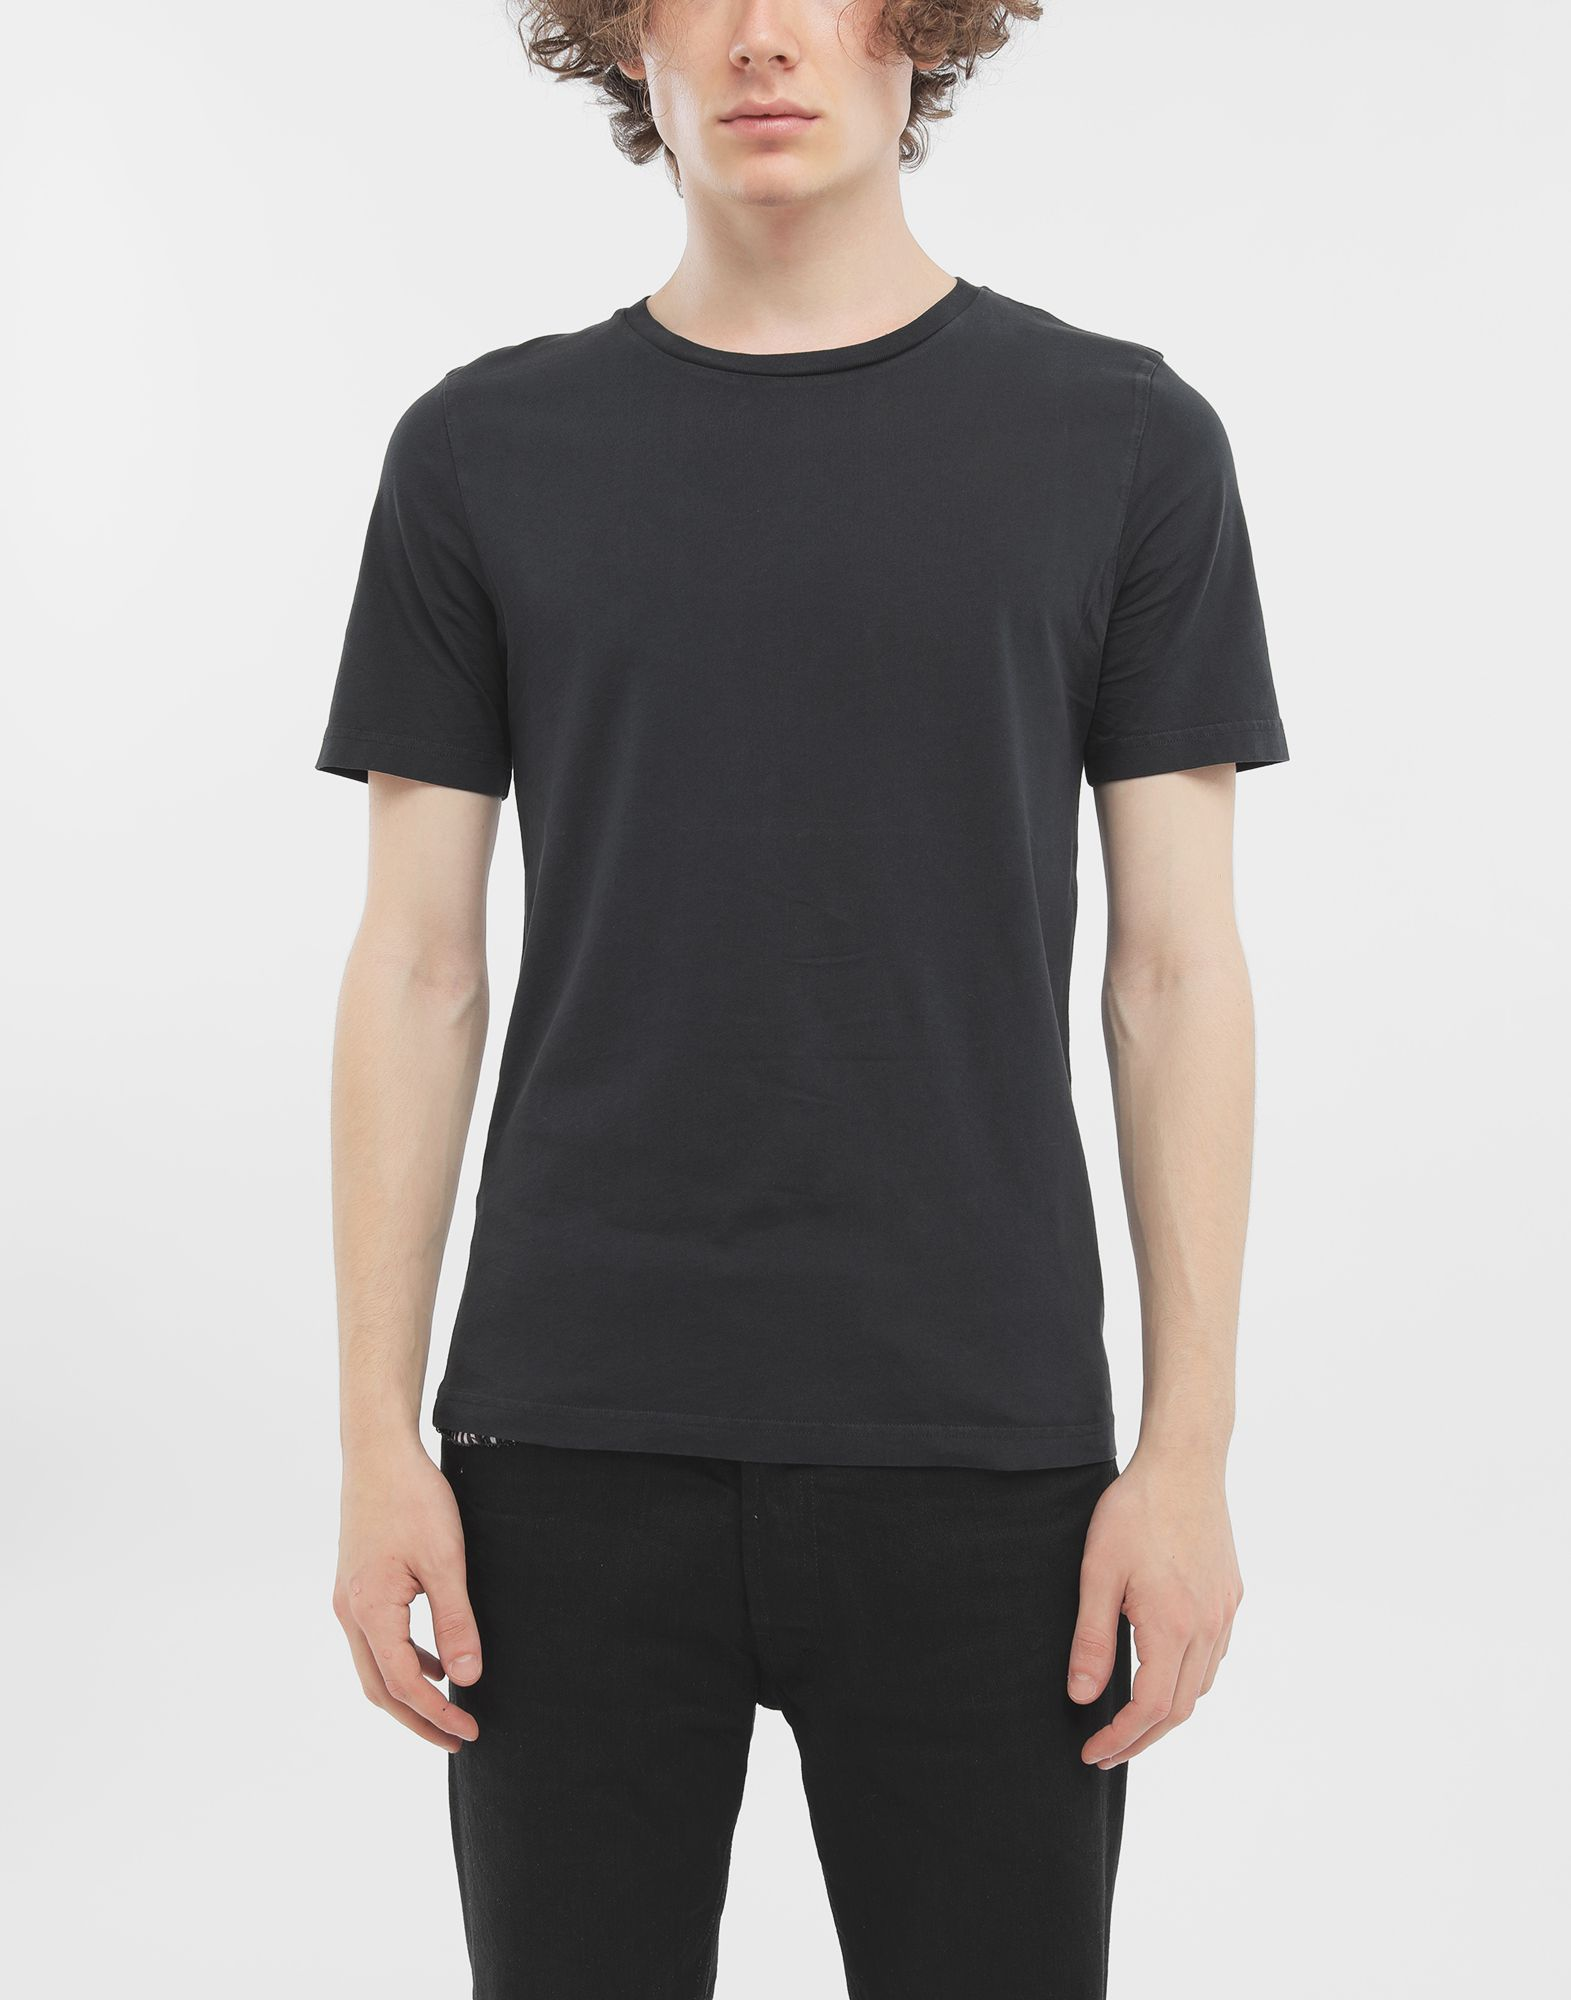 MAISON MARGIELA Cotton tee-shirt Short sleeve t-shirt Man r